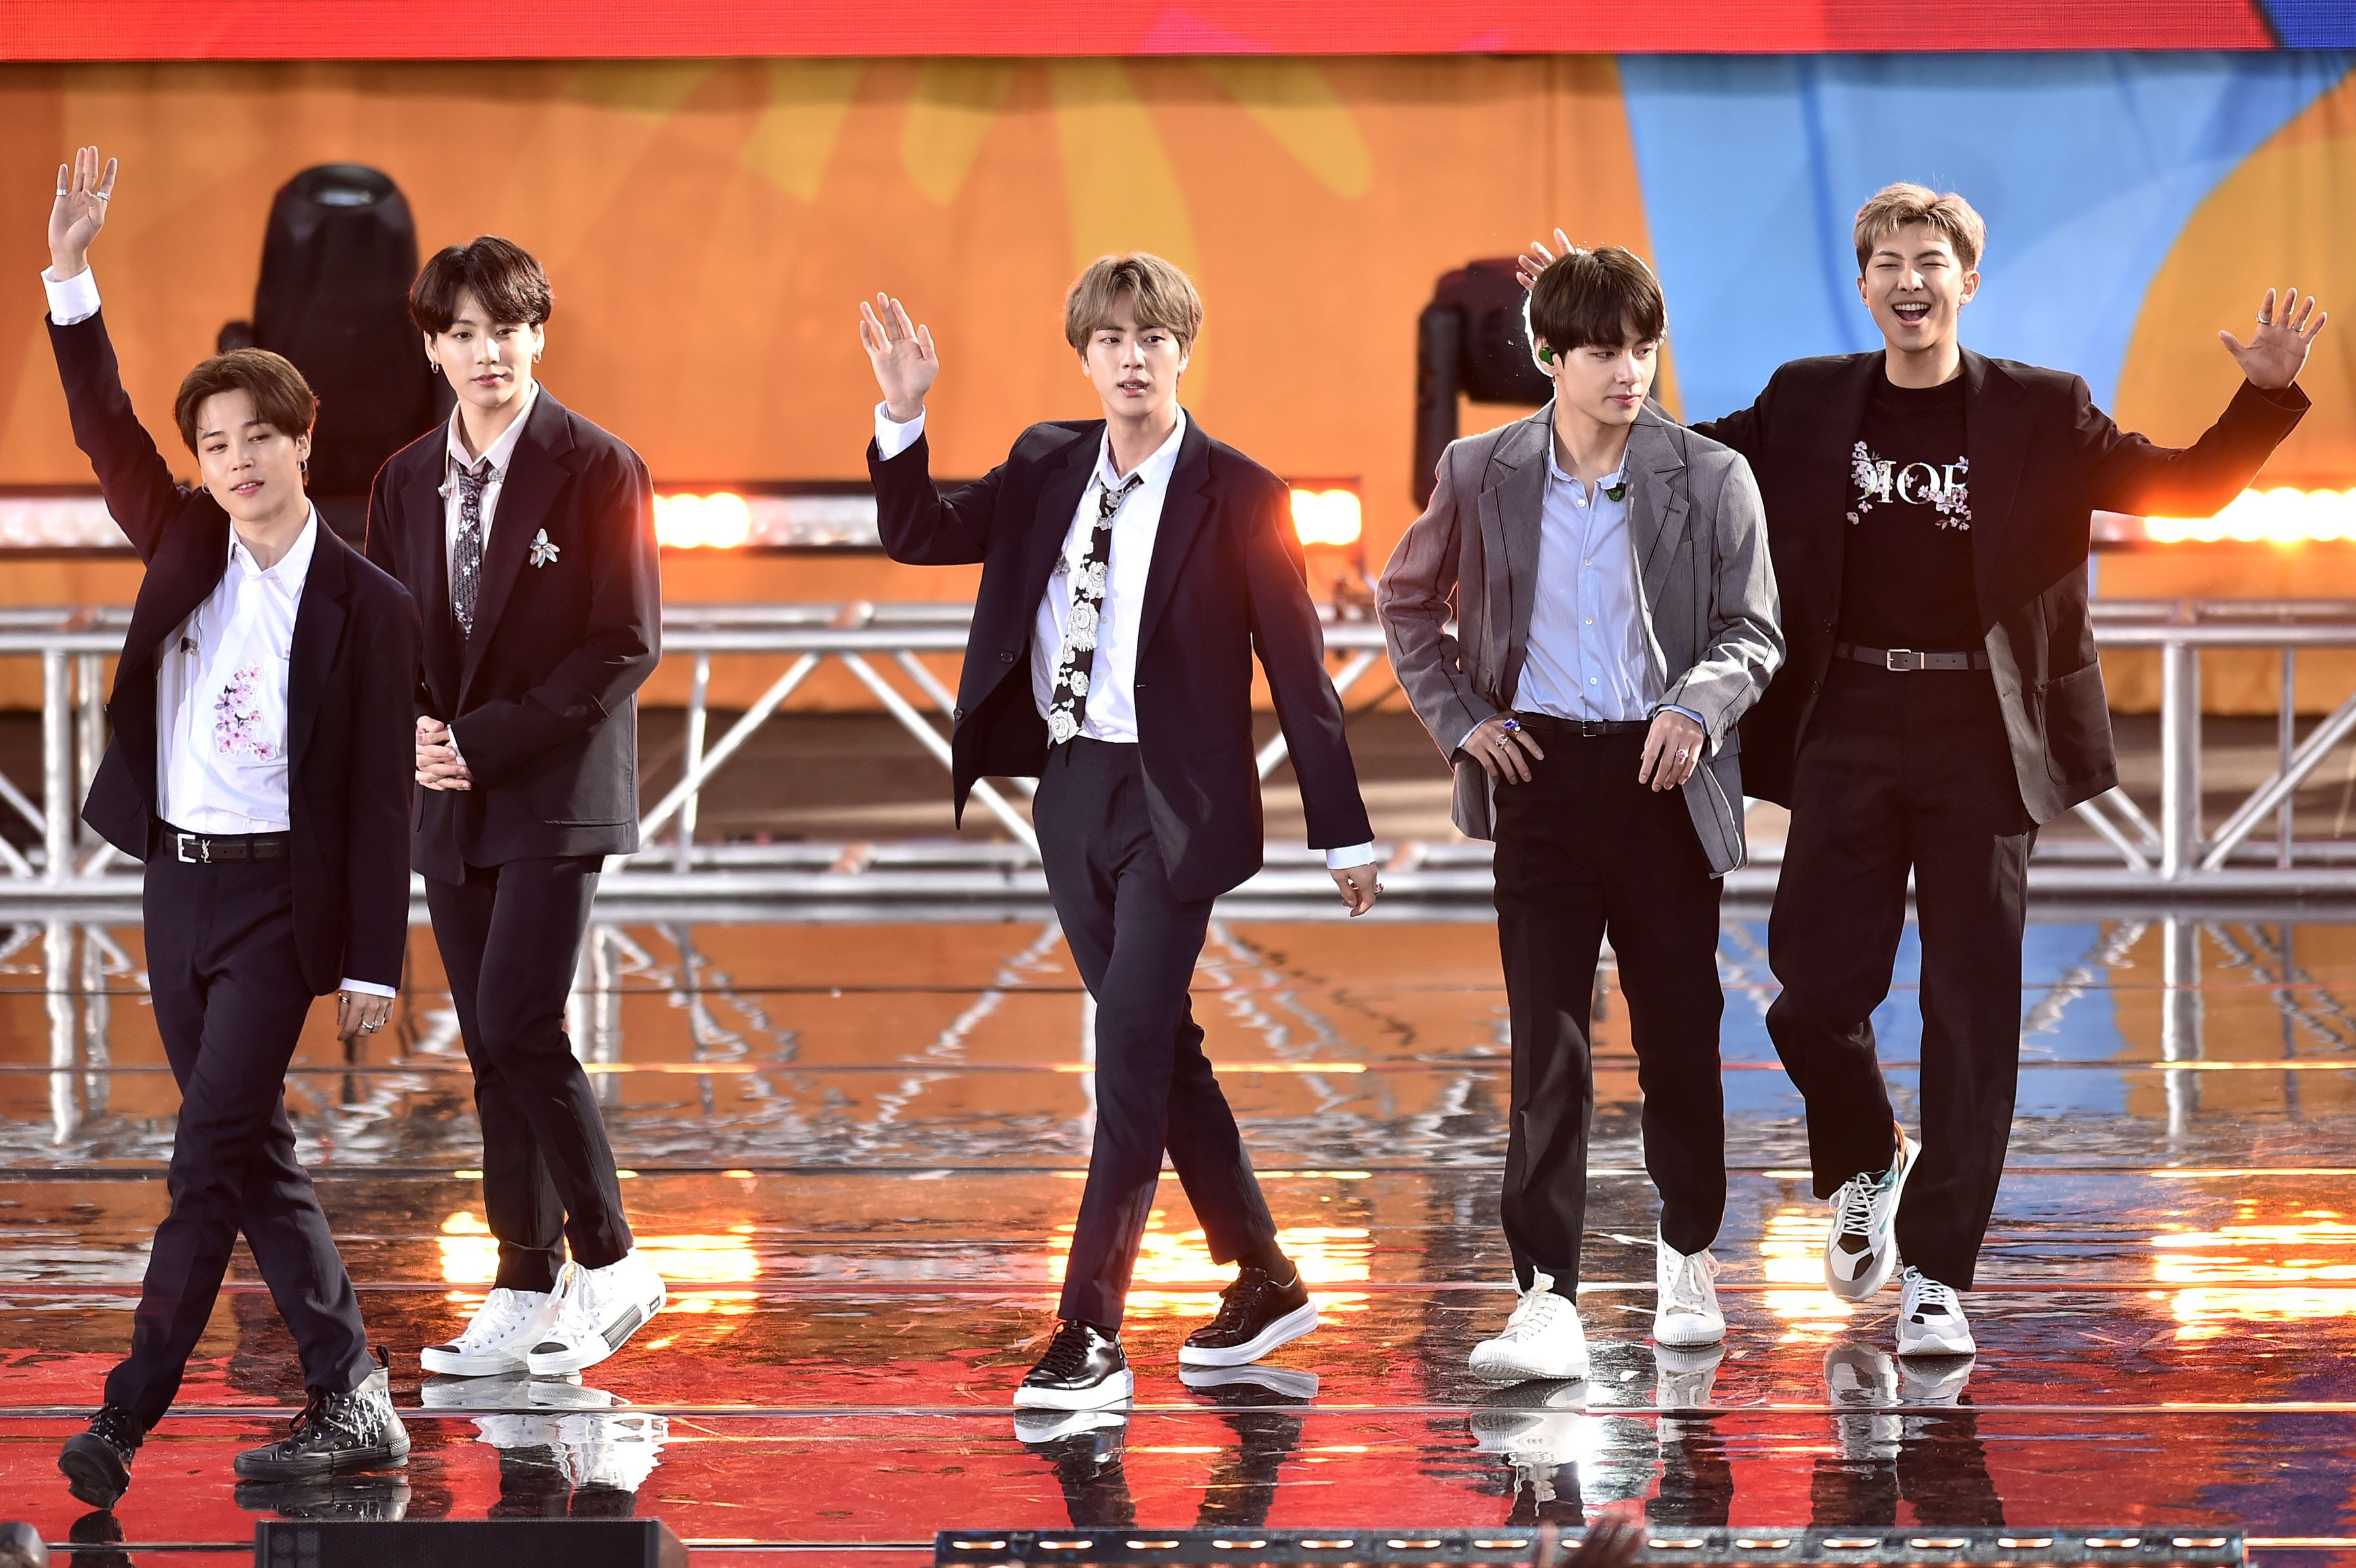 Jimin, Jungkook, Jin, V, and RM while performing in Central Park.